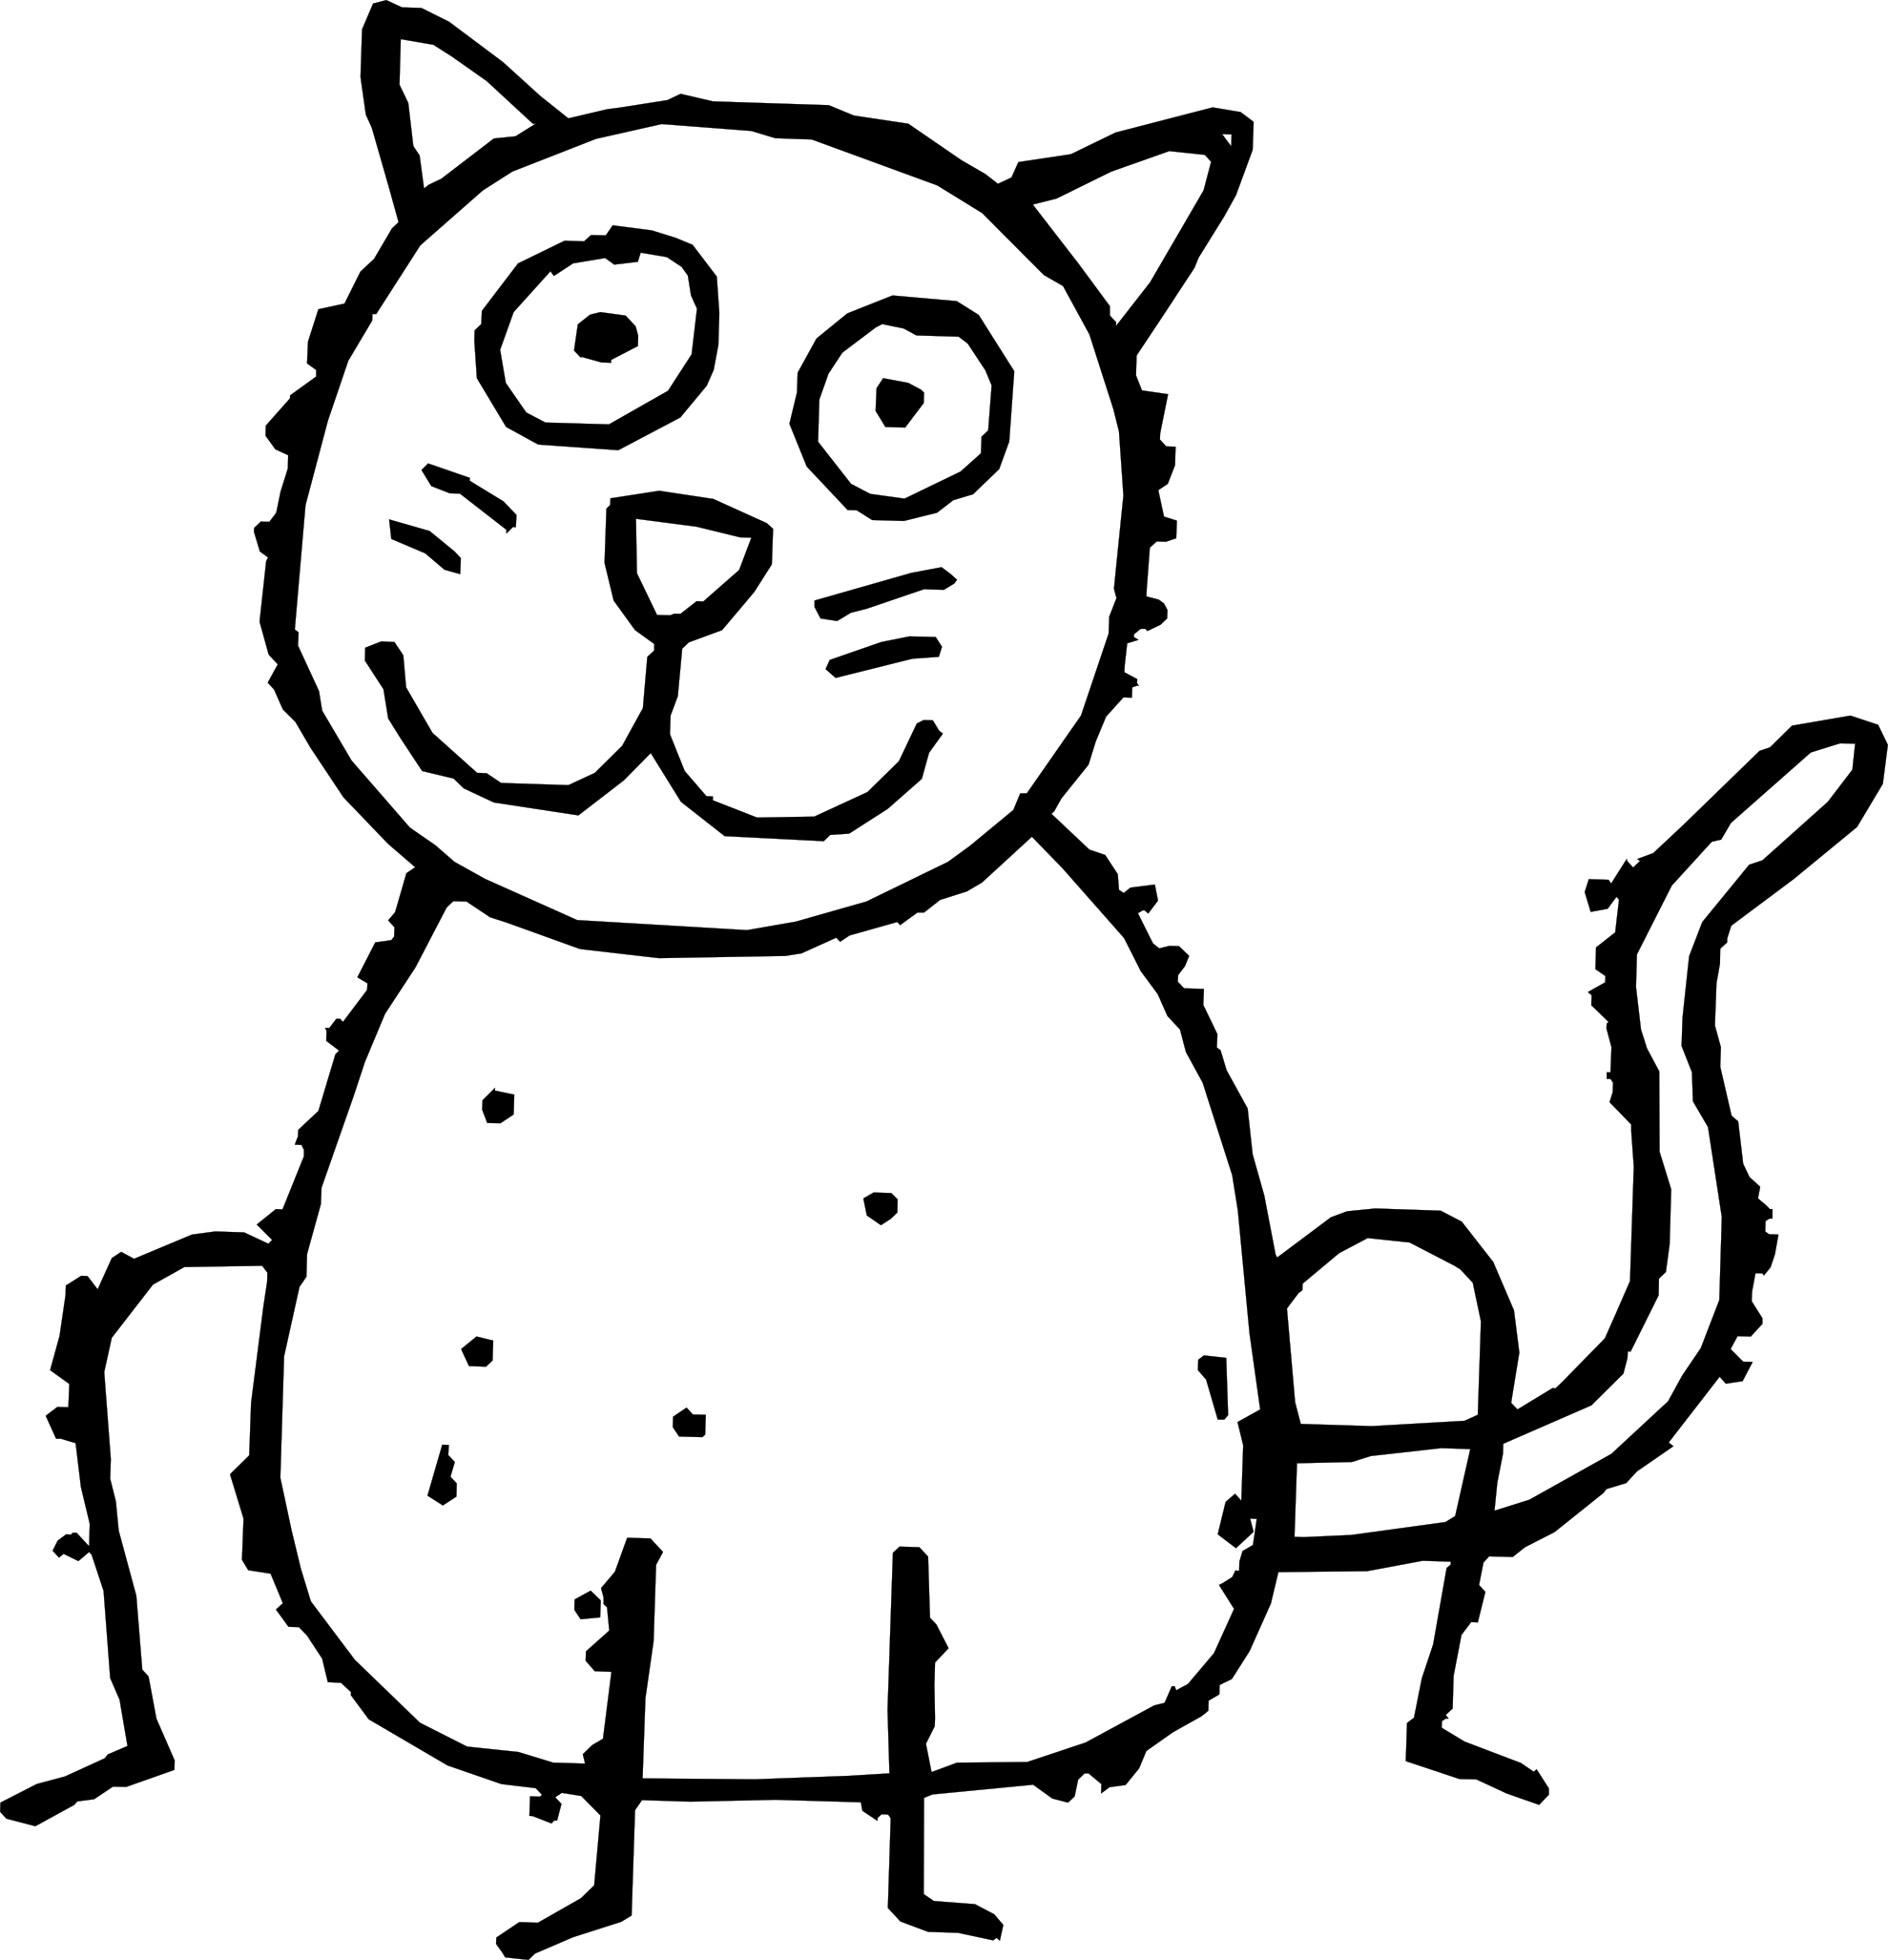 Real cat drawing clipart png black and white stock Cat line drawing clip art - ClipartFest png black and white stock